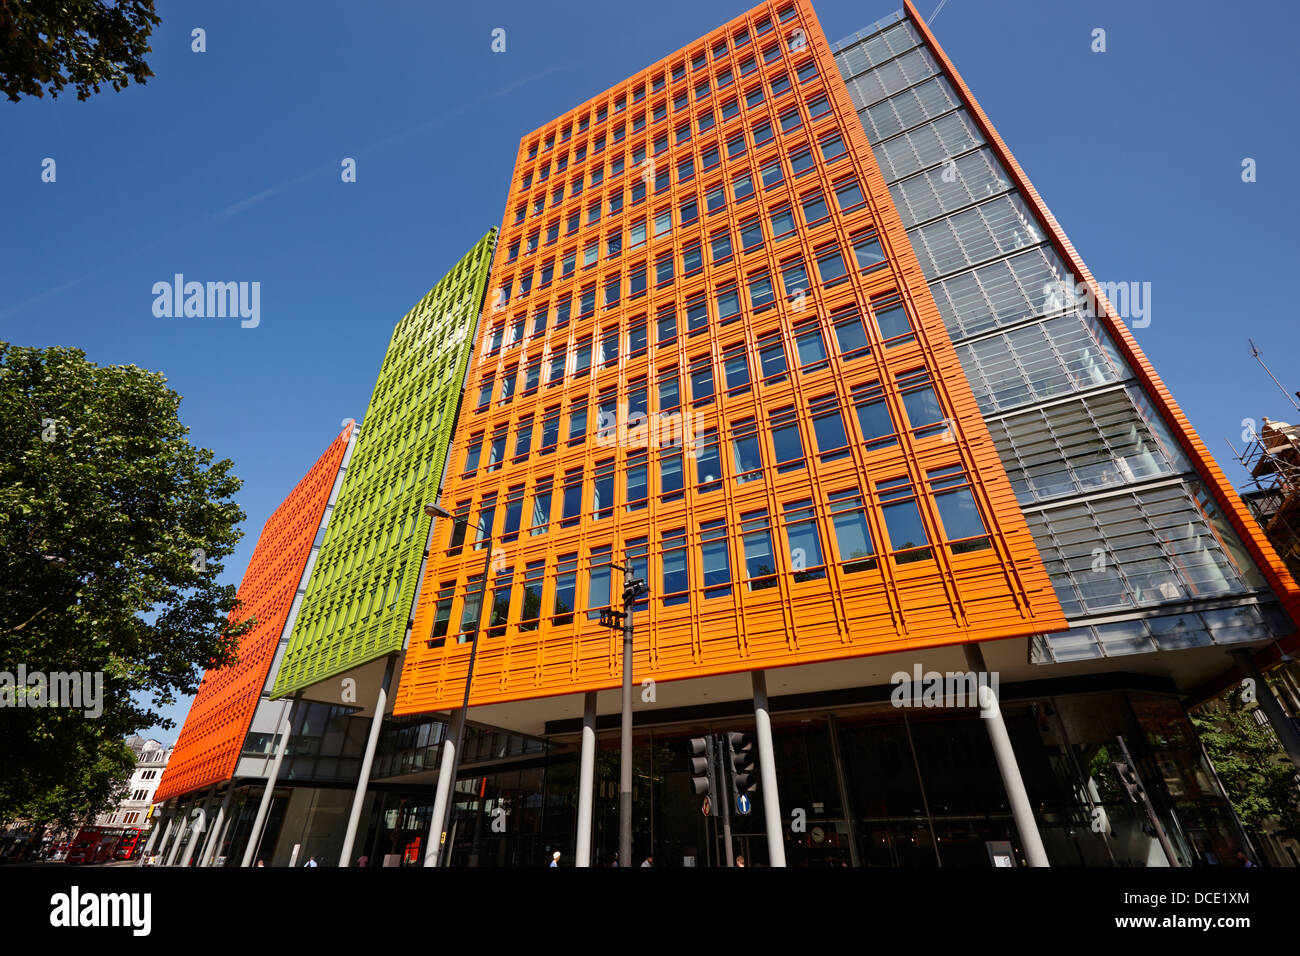 google office in uk. Central Saint Giles Office Building Home To Google Uk London England UK In